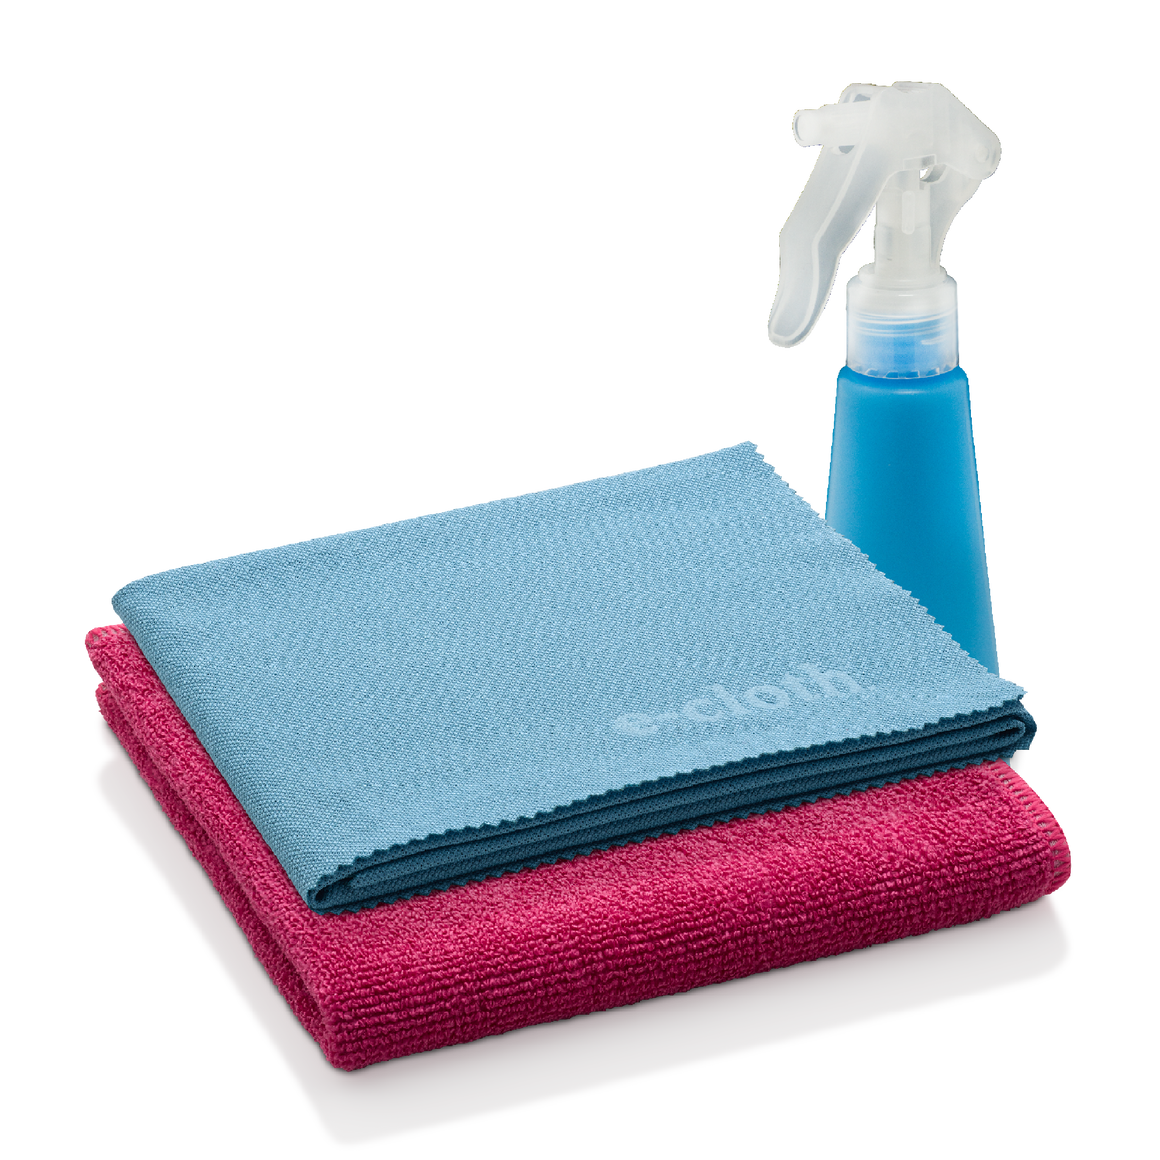 Home Cleaning 3 PC Kit (limited edition)